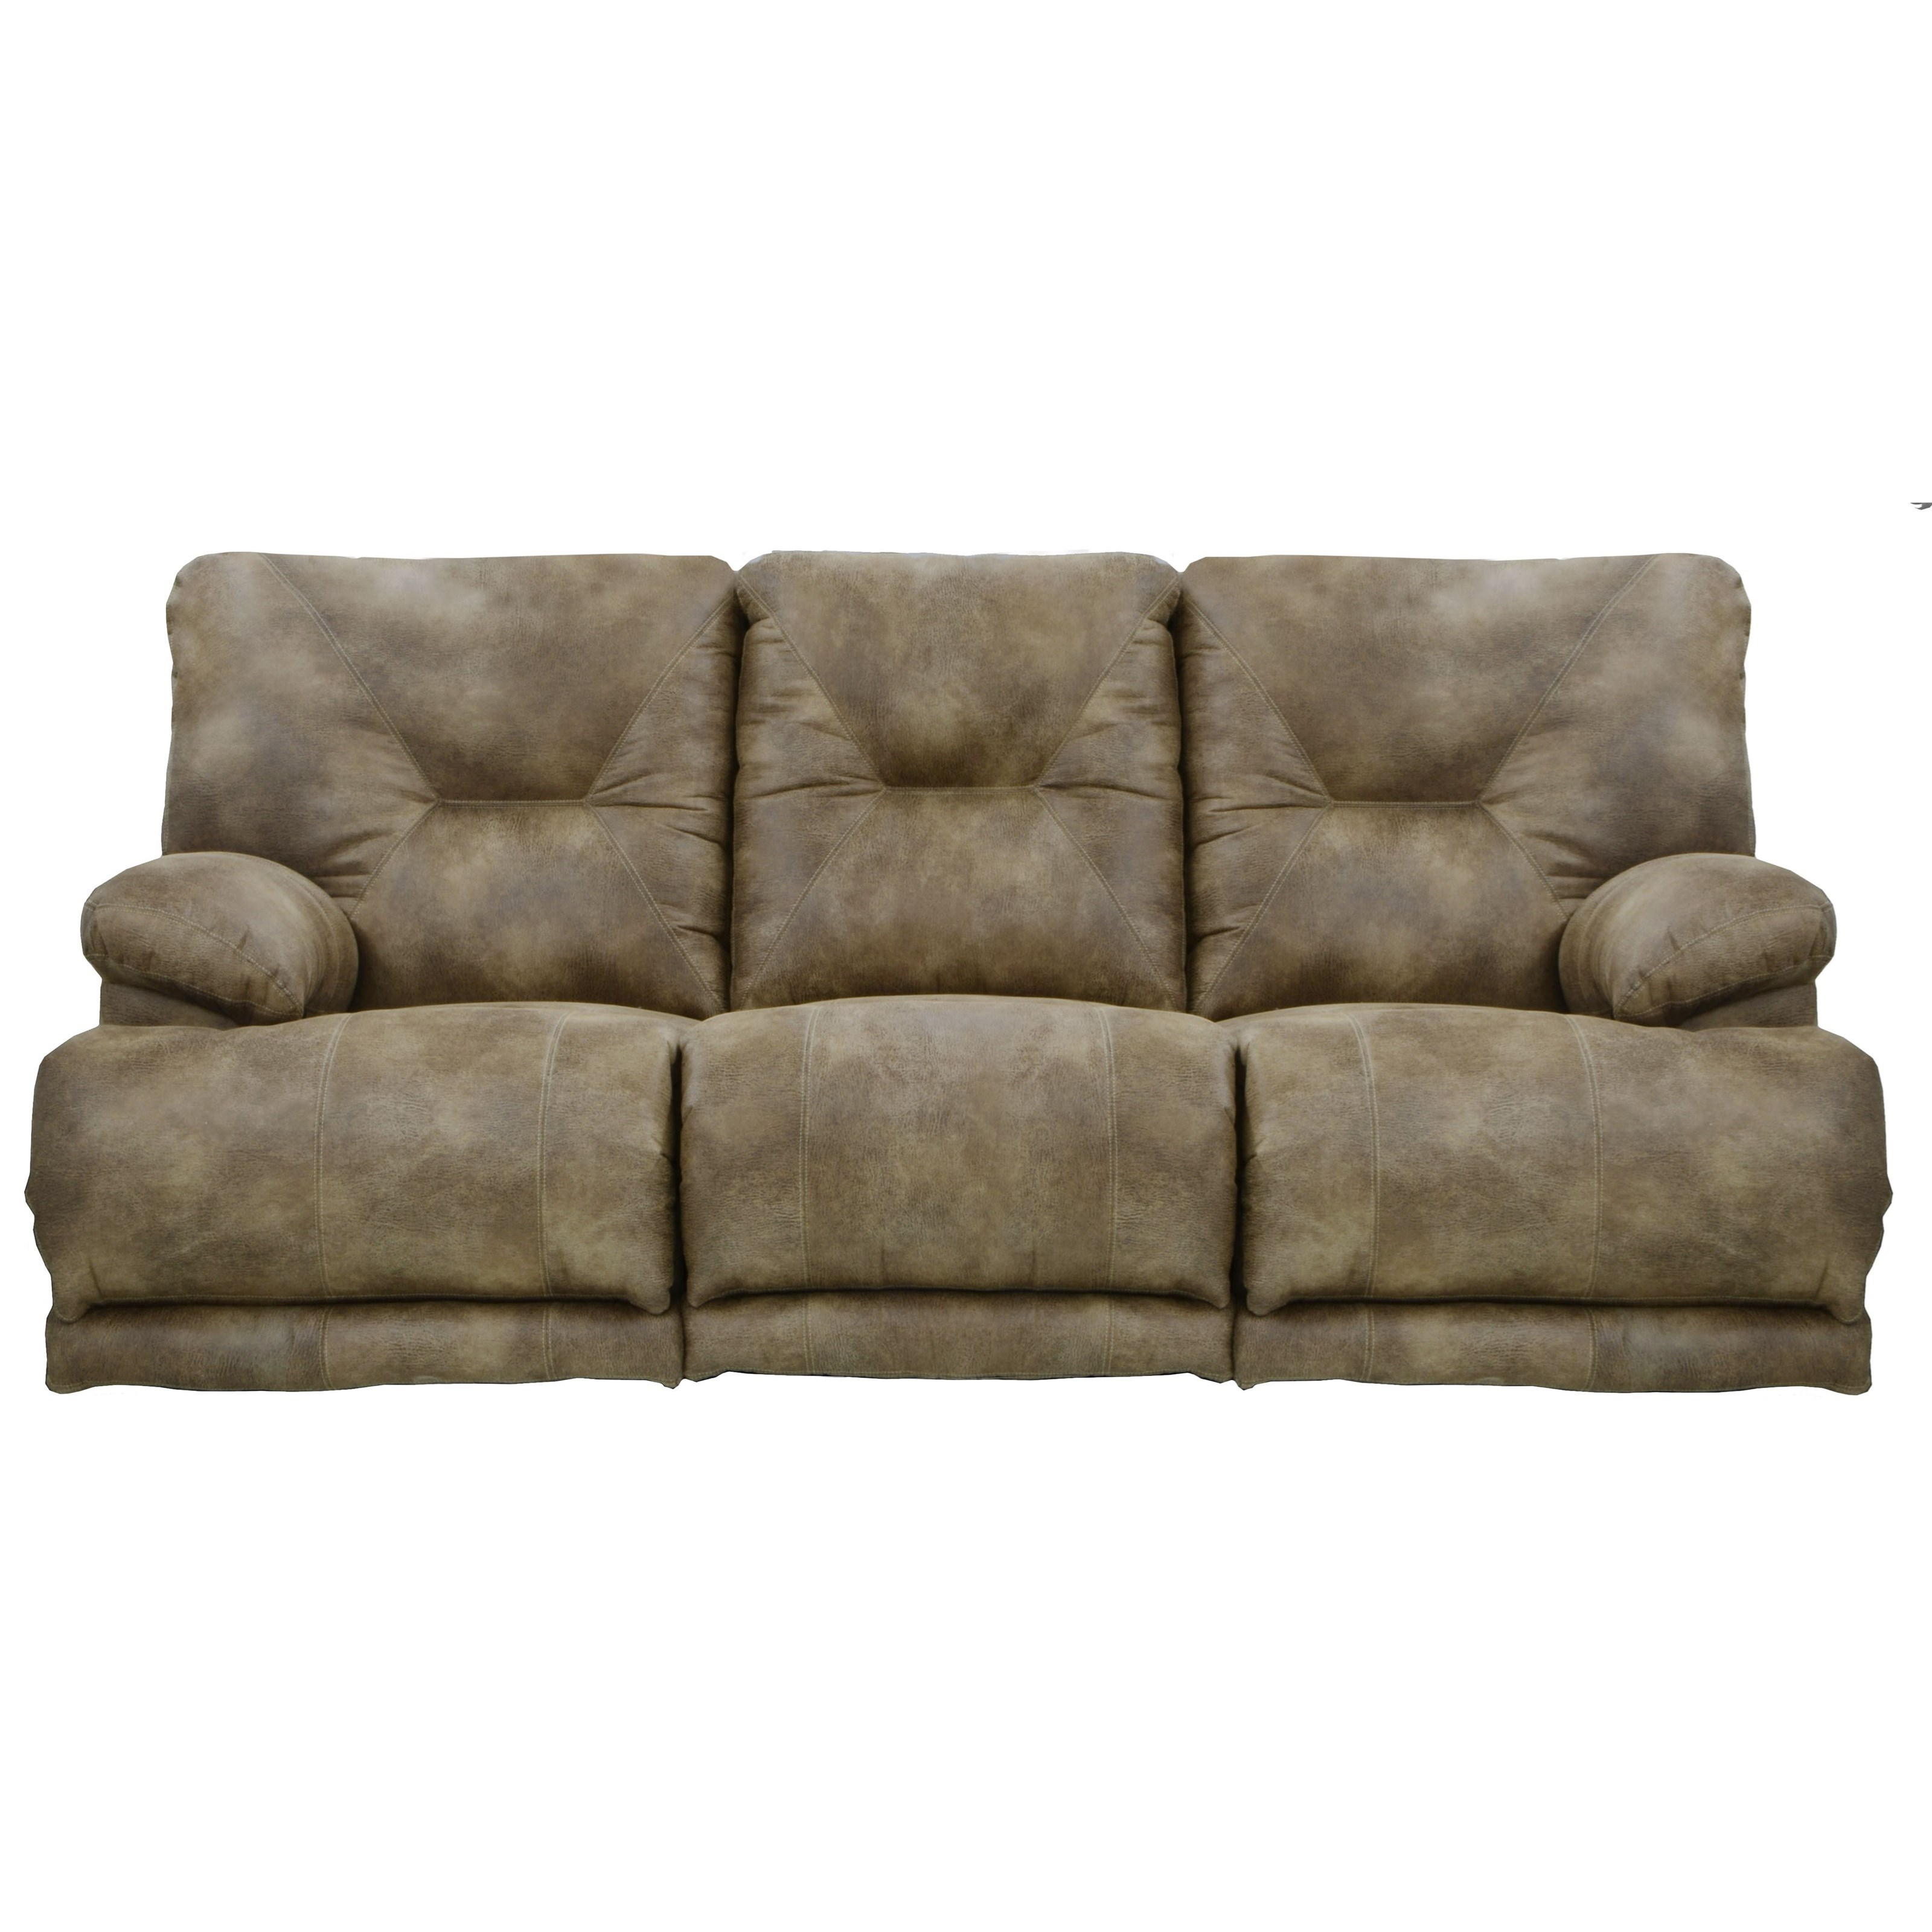 POWER 3 Seat  Lay Flat  Reclining Sofa  sc 1 st  Wolf Furniture & POWER 3 Seat